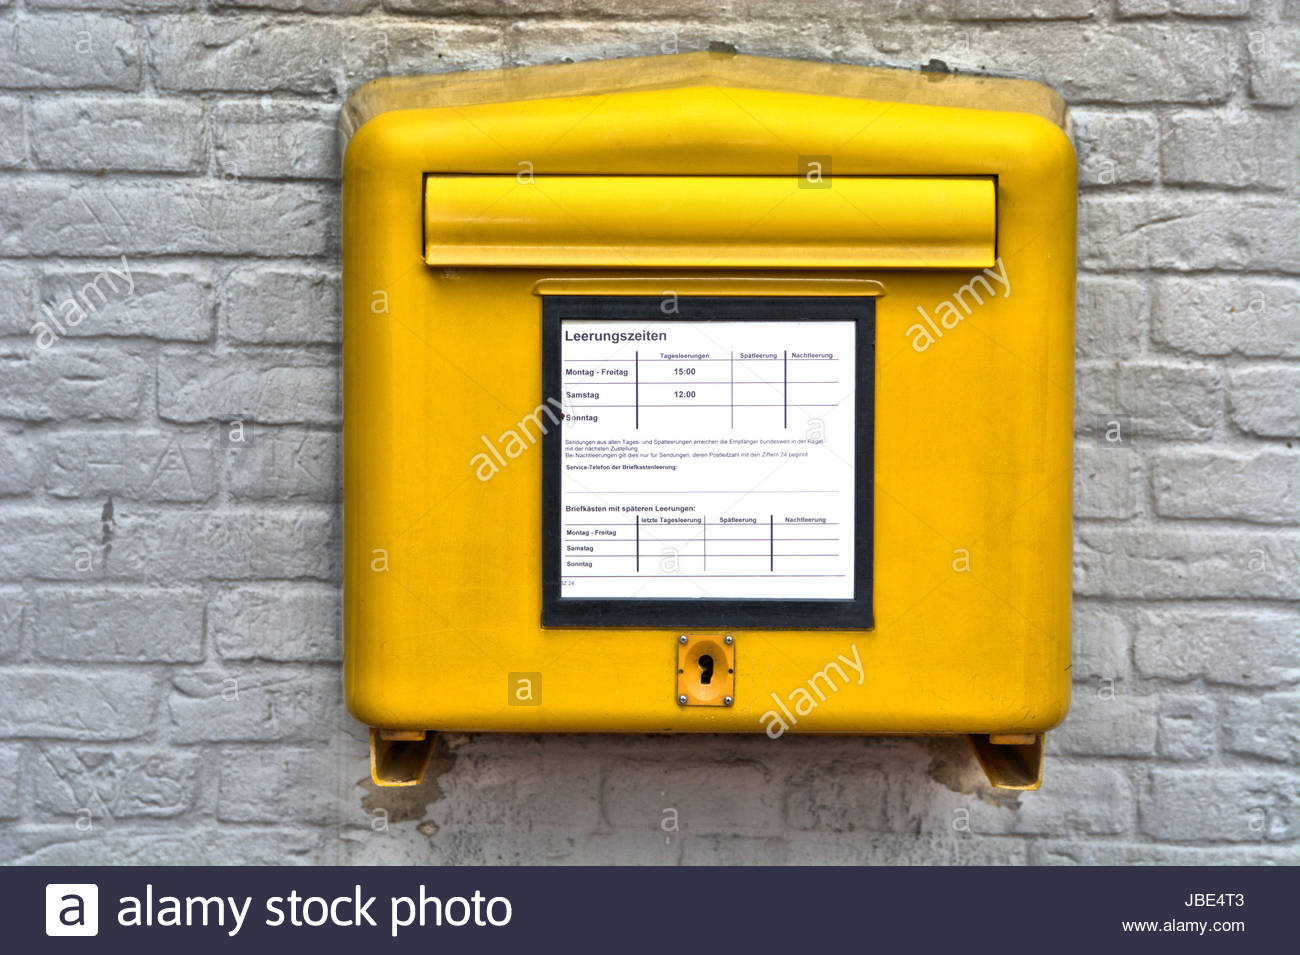 briefkasten stockfotos briefkasten bilder alamy